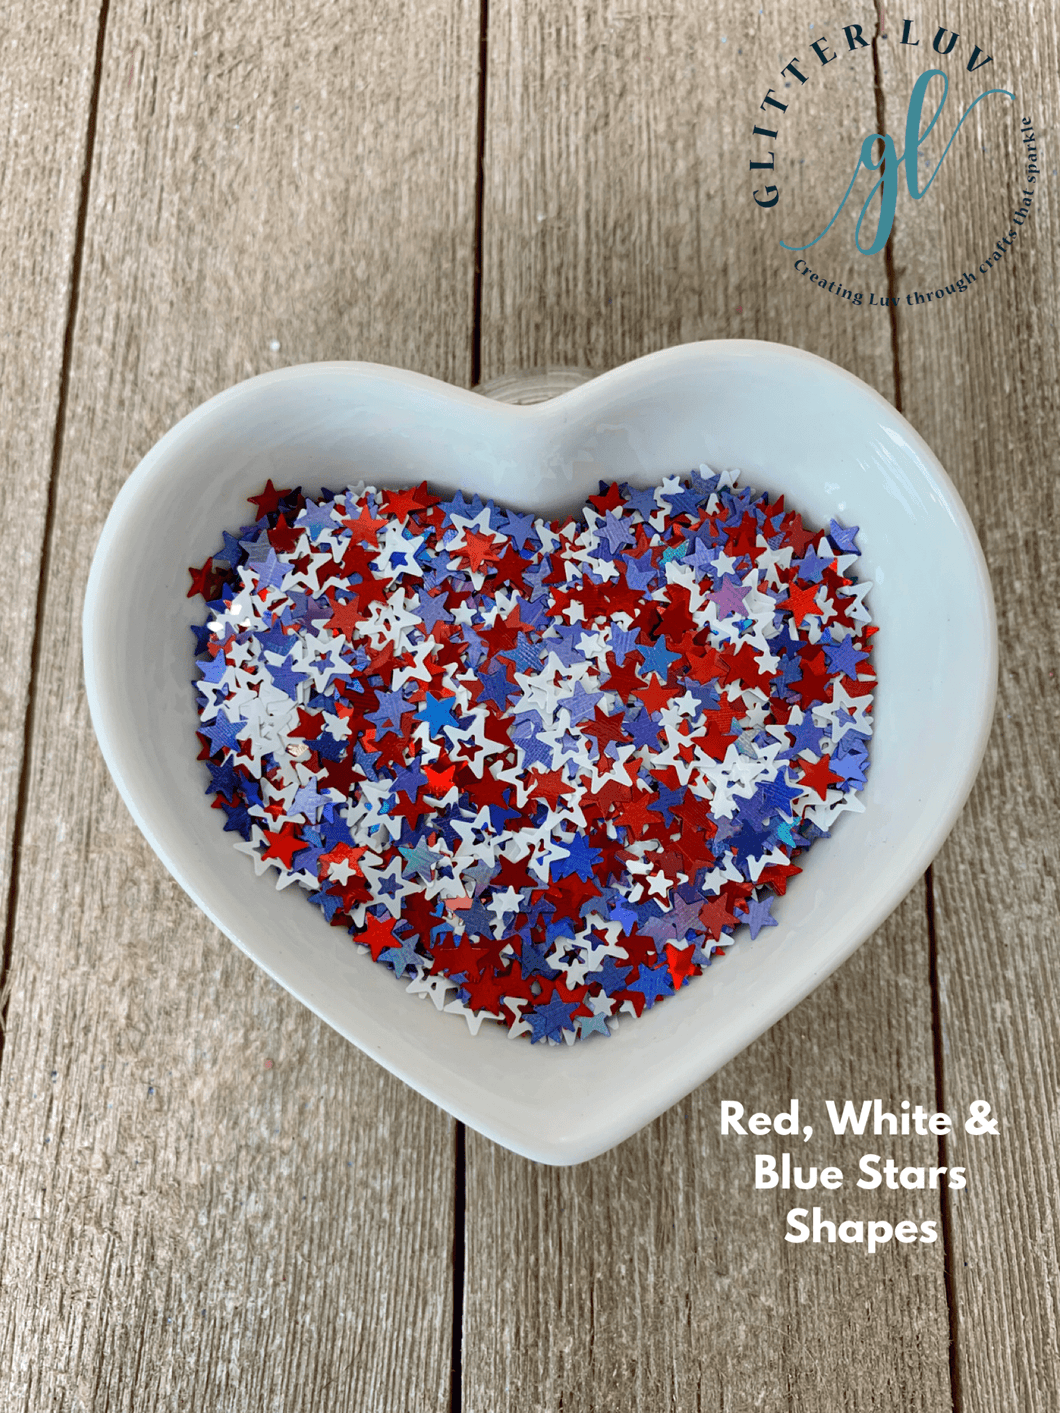 Red, White, Blue Star Shapes